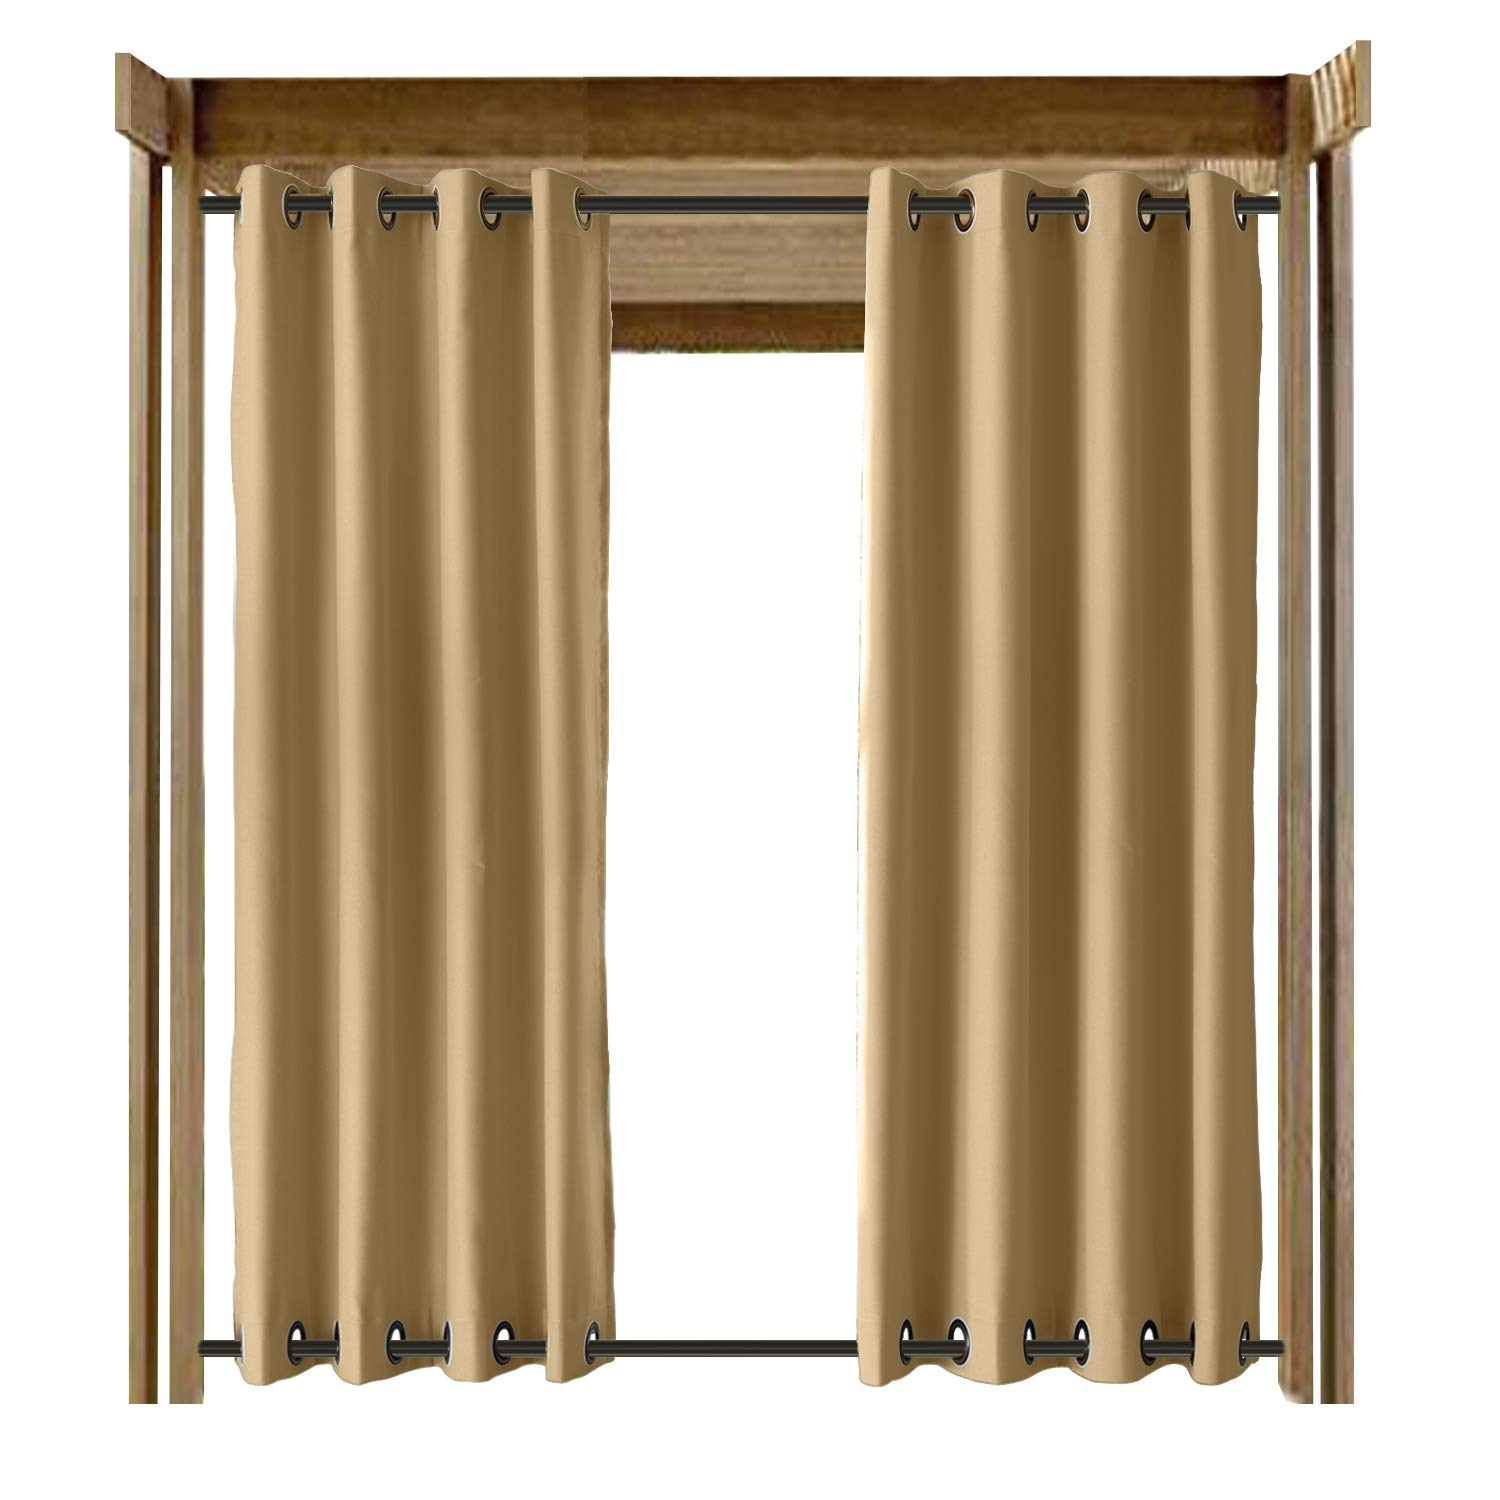 CosyPages Summer Outdoor Curtains for Front Porch Pergola Cabana Covered Patio Gazebo Dock Beach Home Noise Reducing Heat Insulated Grommet at Top and Bottom Rose 150'' W x 96'' L (1 Panel) Wheat